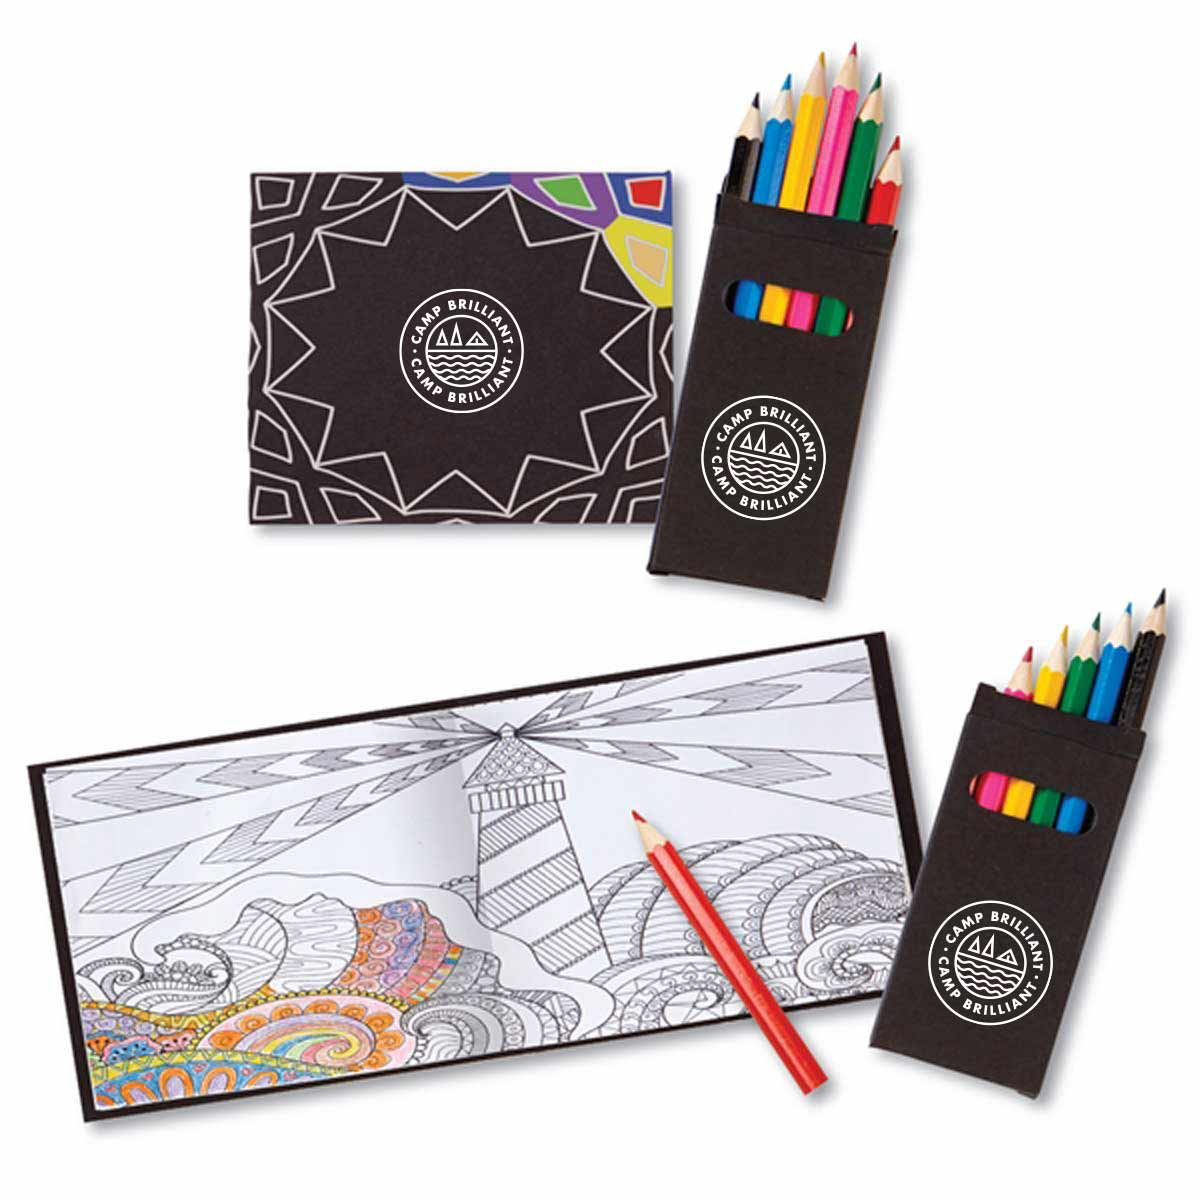 229572 midnight adult coloring set one color imprint on book cover and pencil case same size logo on both